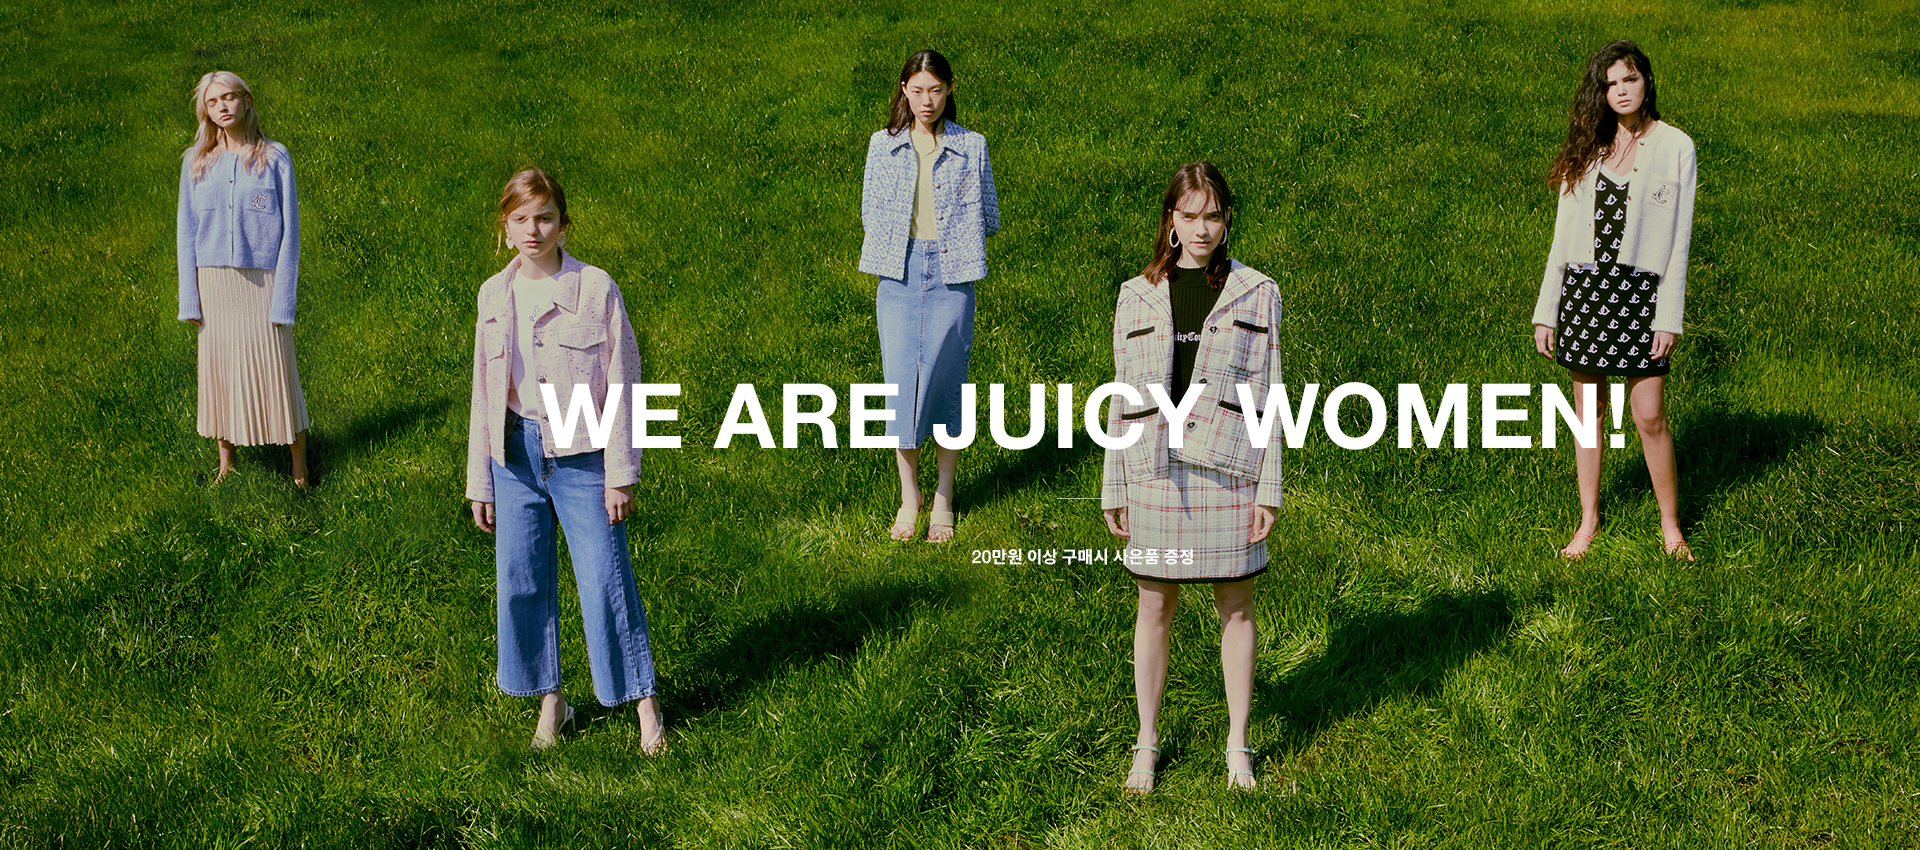 쥬시꾸뛰르 we're juicy women